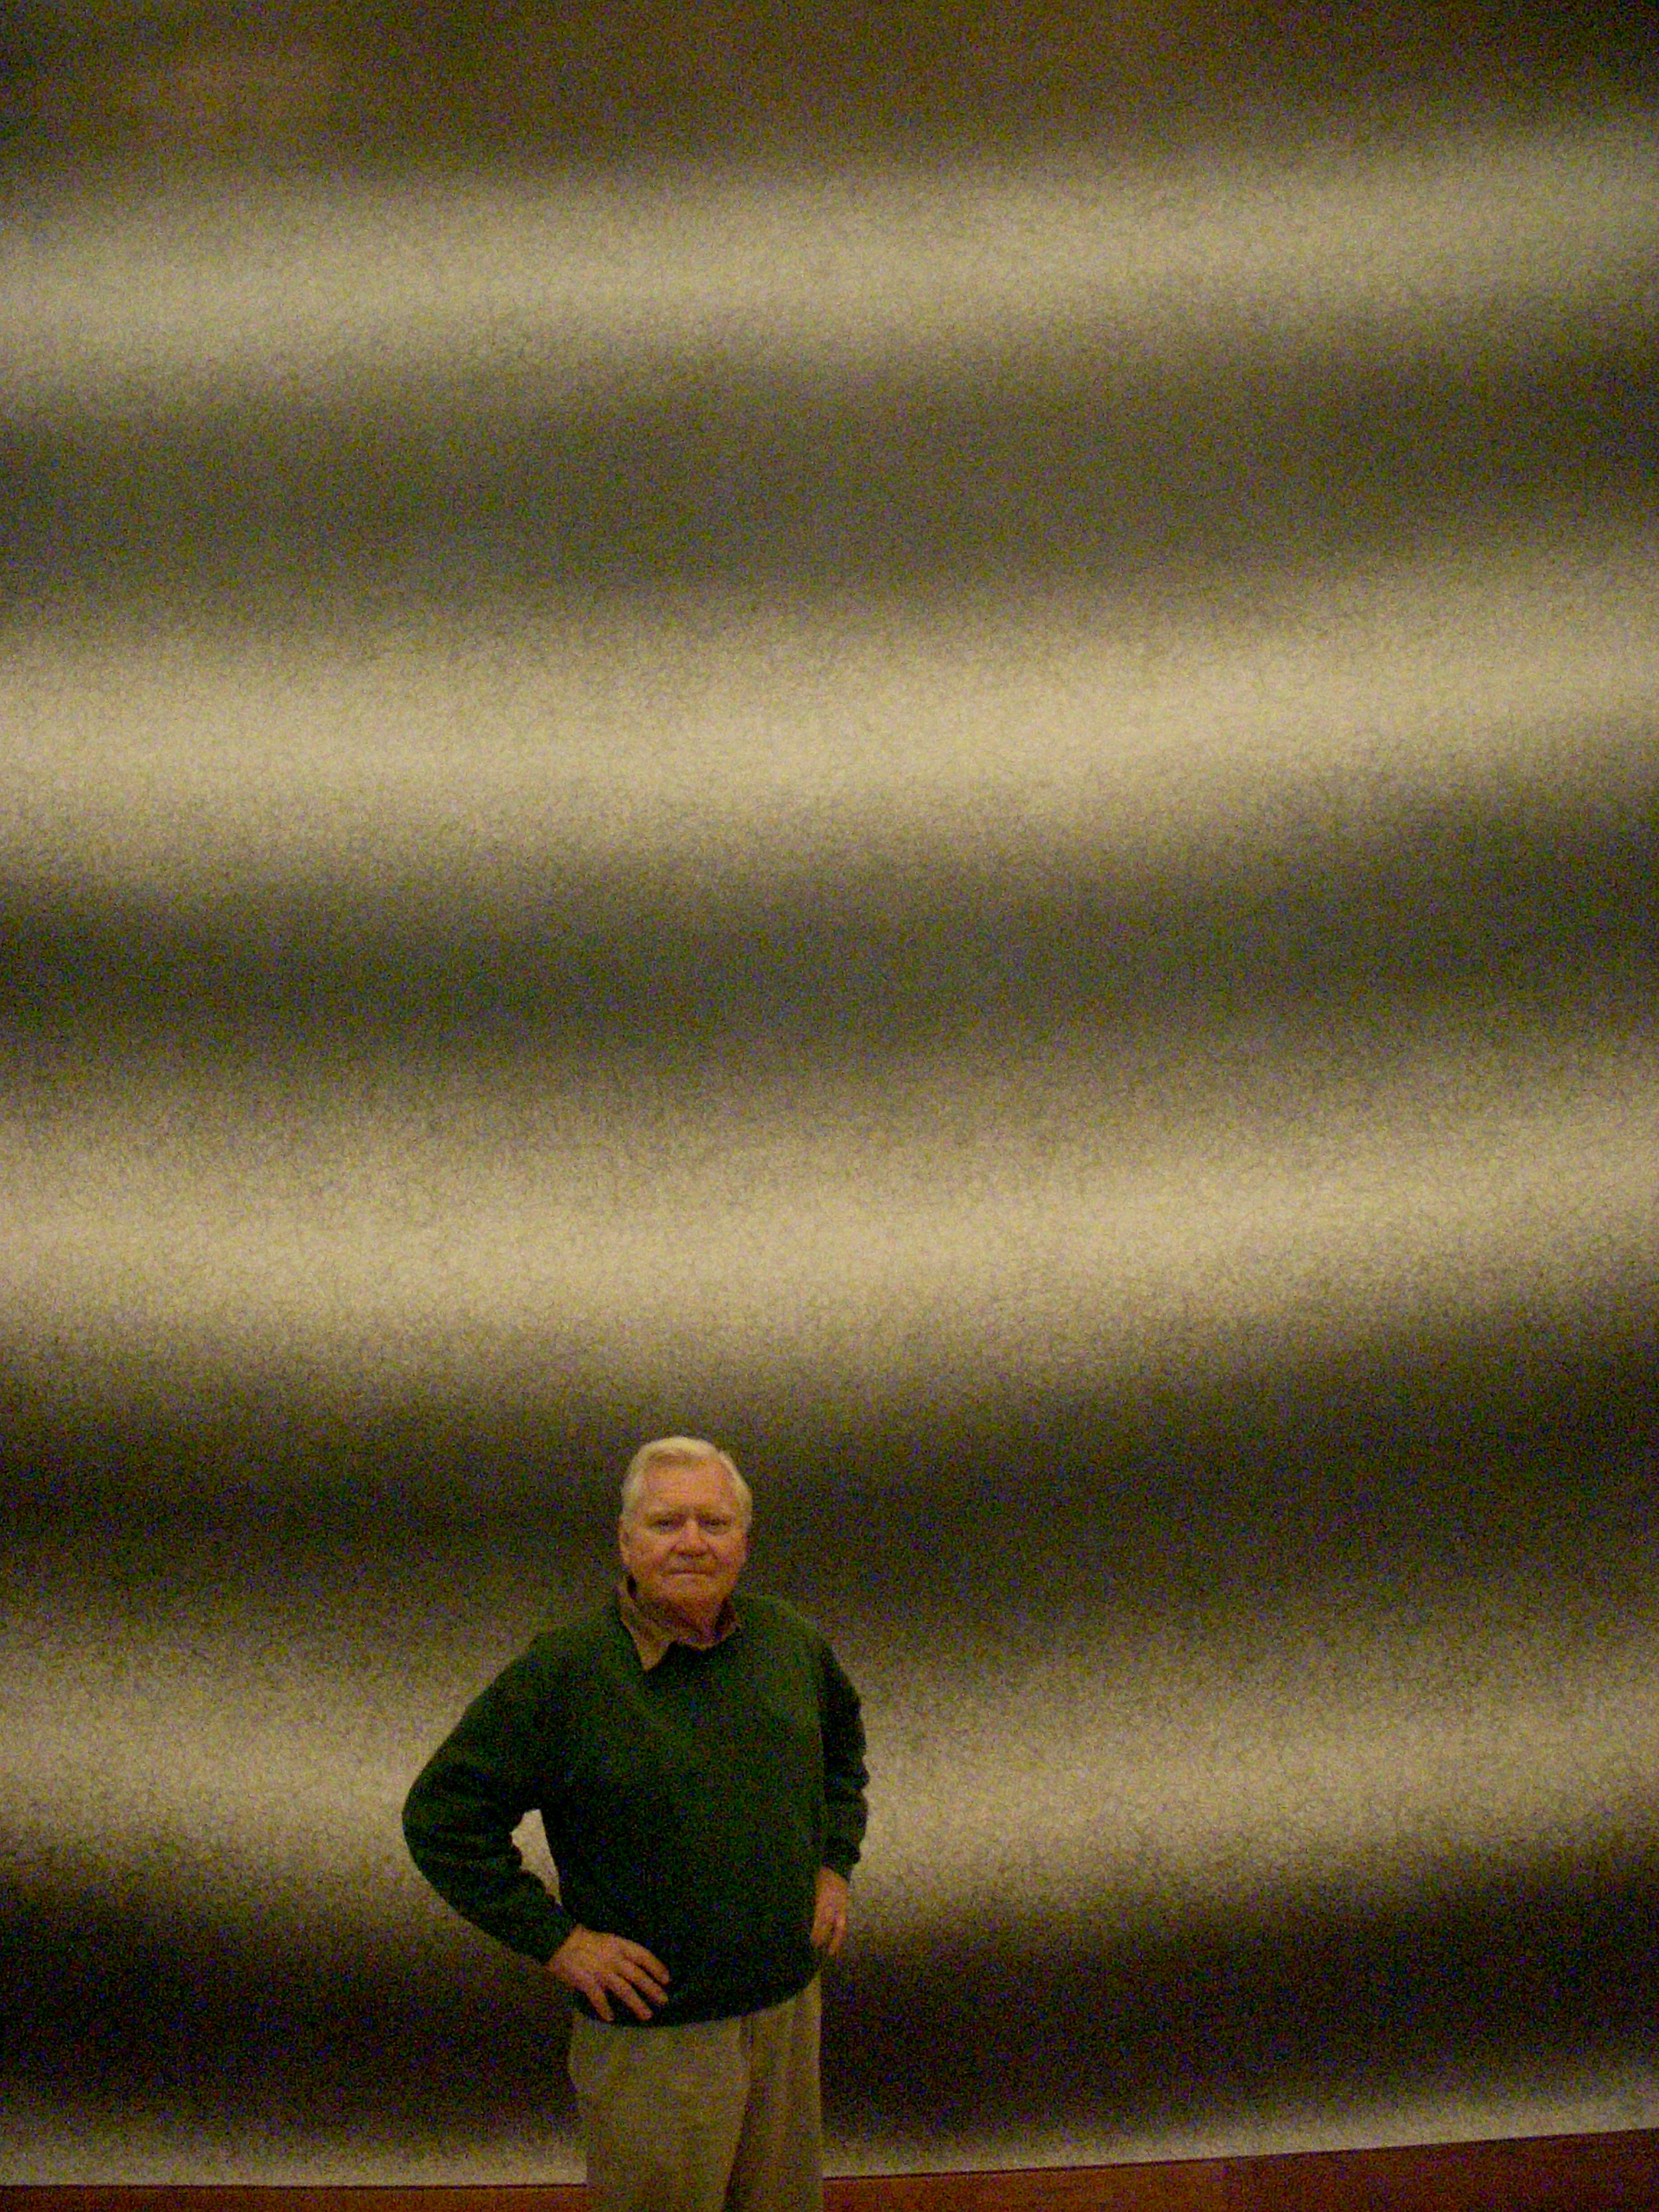 JU in front of the Sol Lewitt wall drawing, shortly after the death of Lewitt and the completion of his drawing at the Allen Memorial Art Museum, Oberlin, Ohio, May 2007